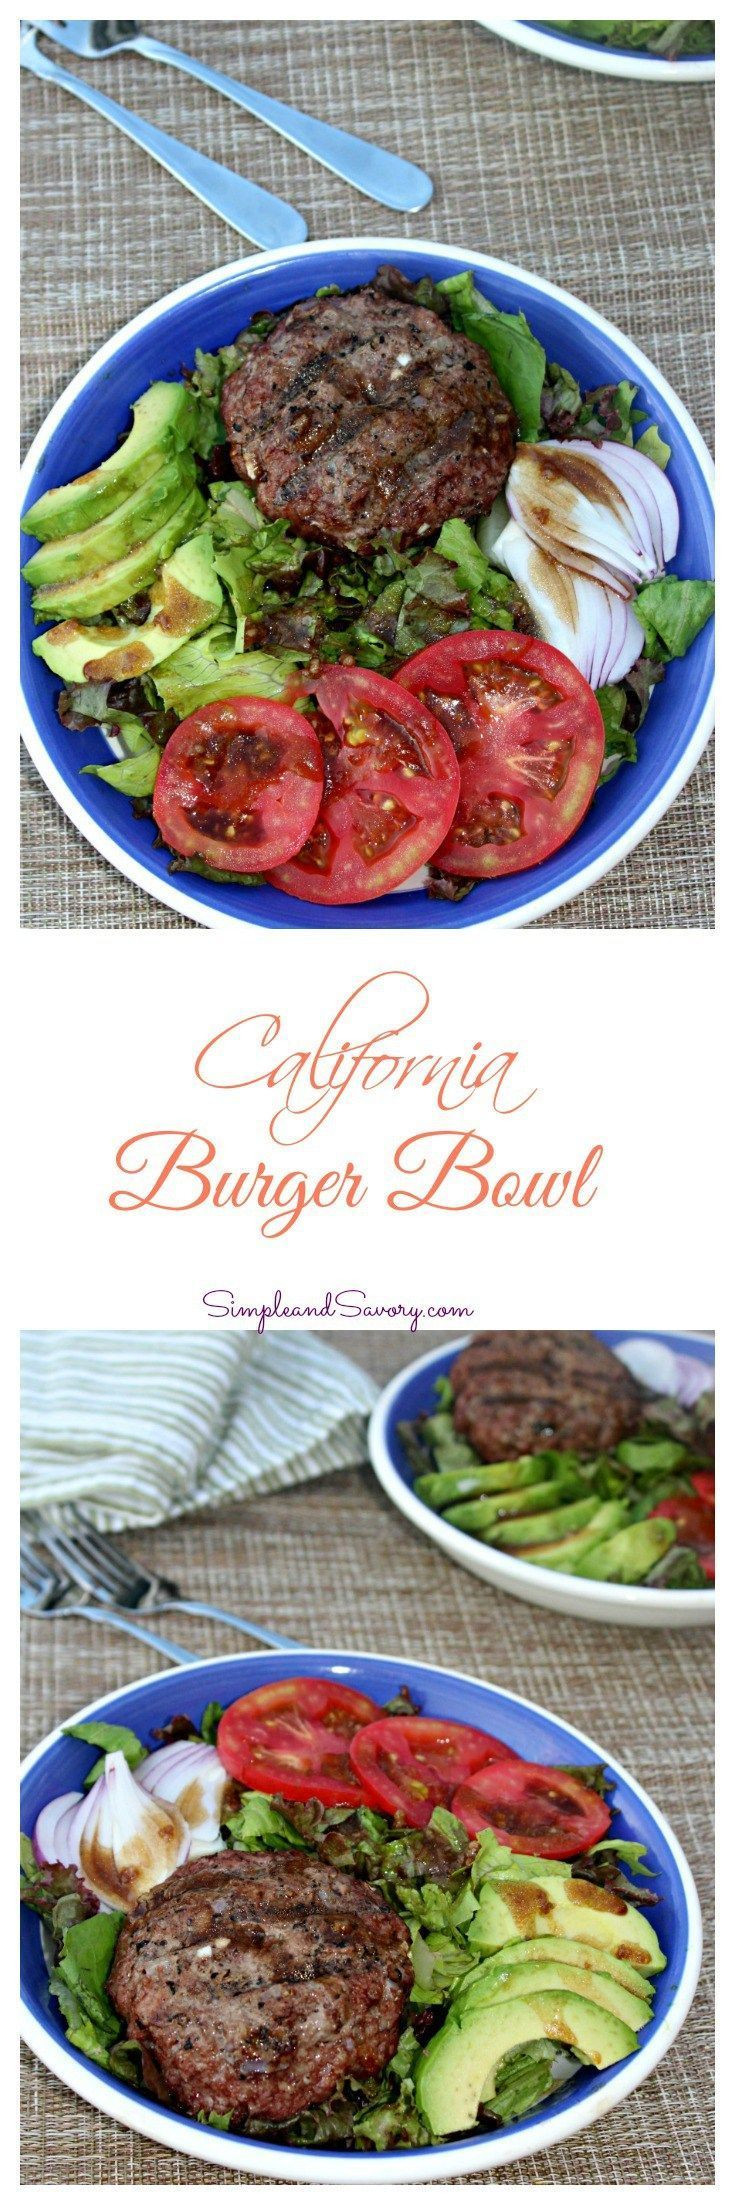 Low Carb Low Cholesterol Recipes  Best 25 Low carb hamburger recipes ideas on Pinterest